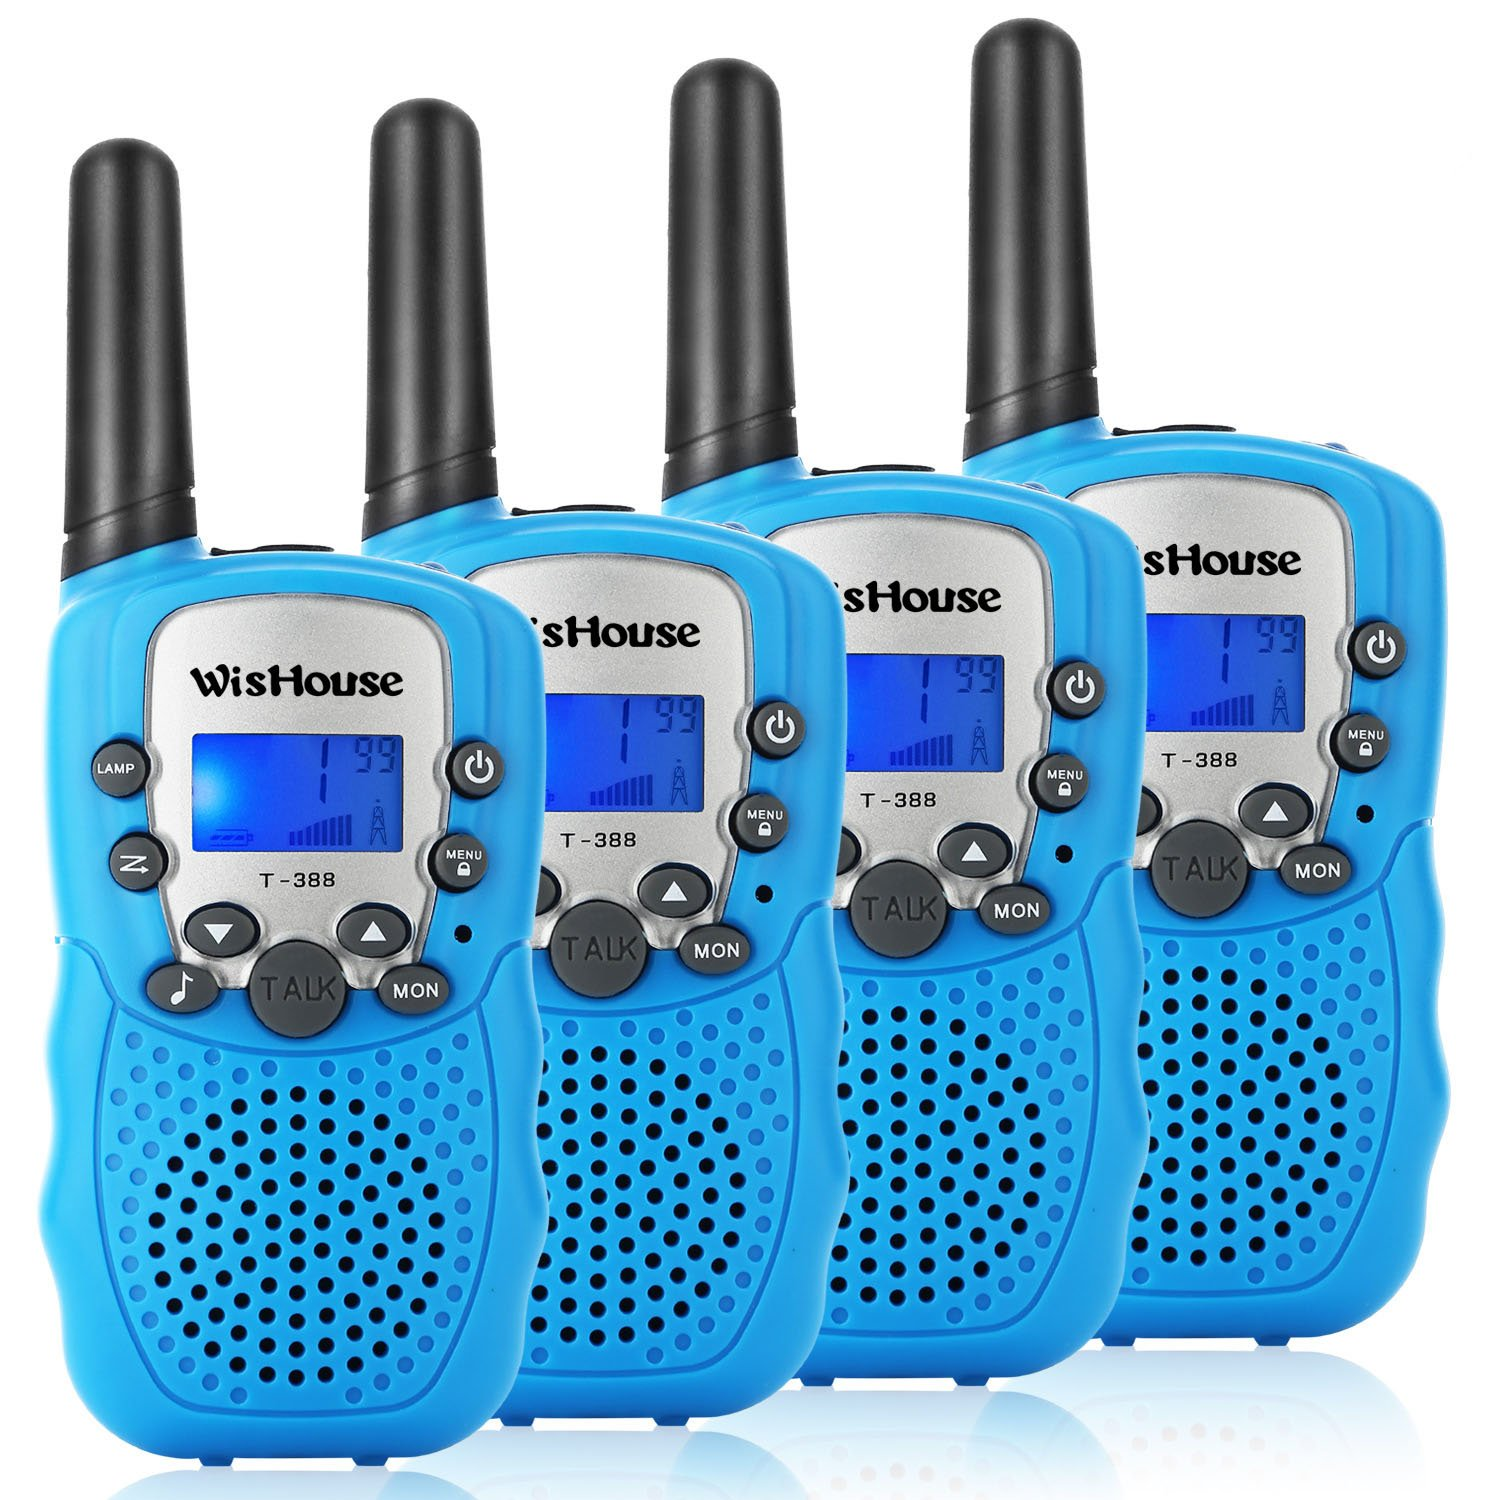 WisHouse Walkie Talkies for Kids,Fashion Toys for Boys and Girls Best Handheld Two Way Radio with Flashlight for 4 Year Old and up to Camping Hiking Riding and Cruise Ship(T388 Blue 4 Pack)